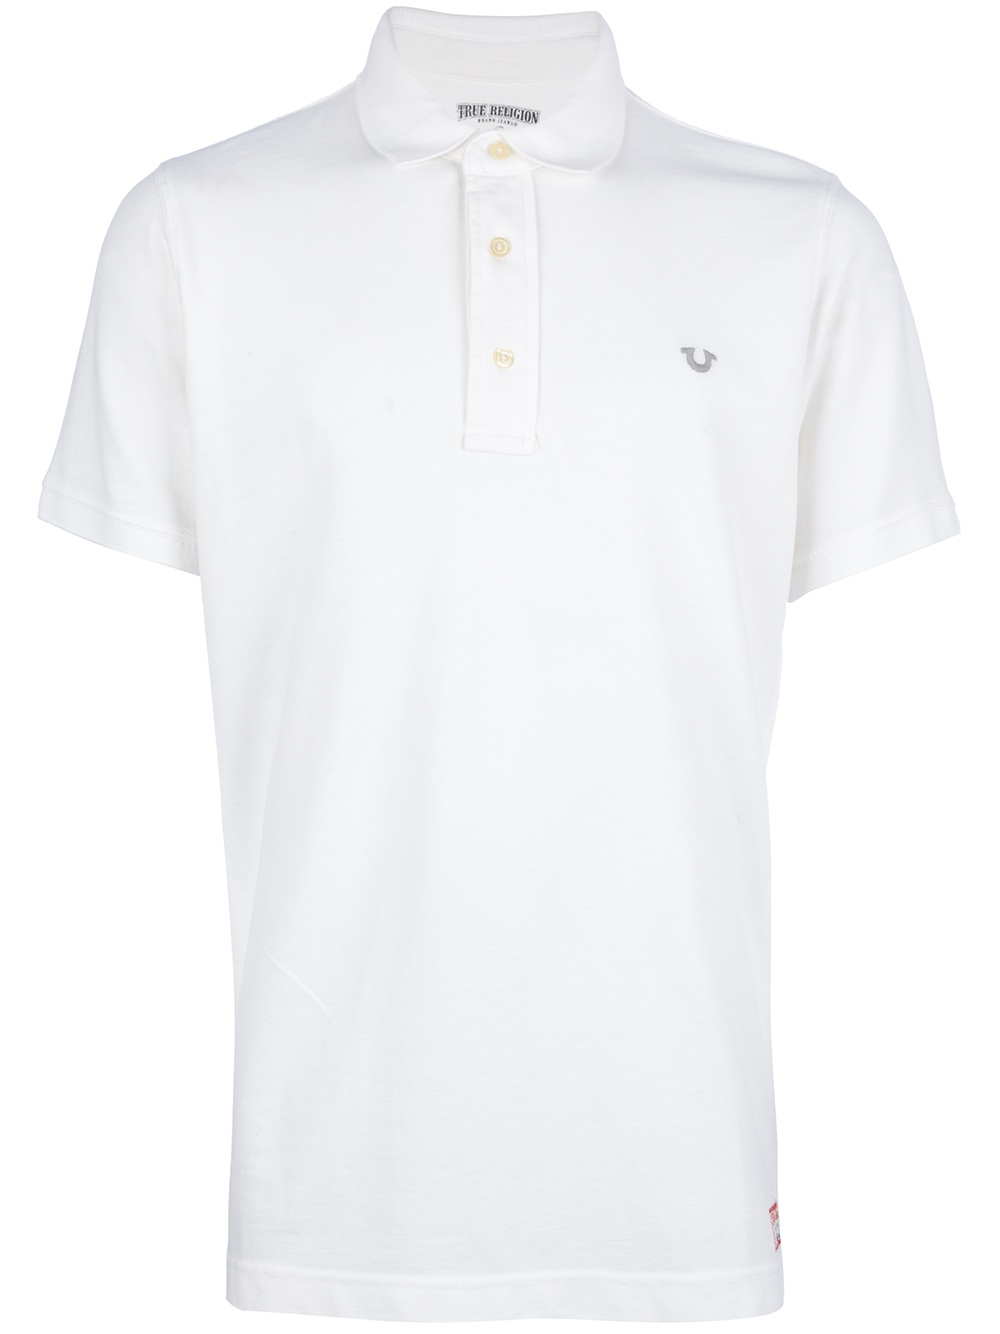 b6766d547 True Religion Classic Polo Shirt in White for Men - Lyst